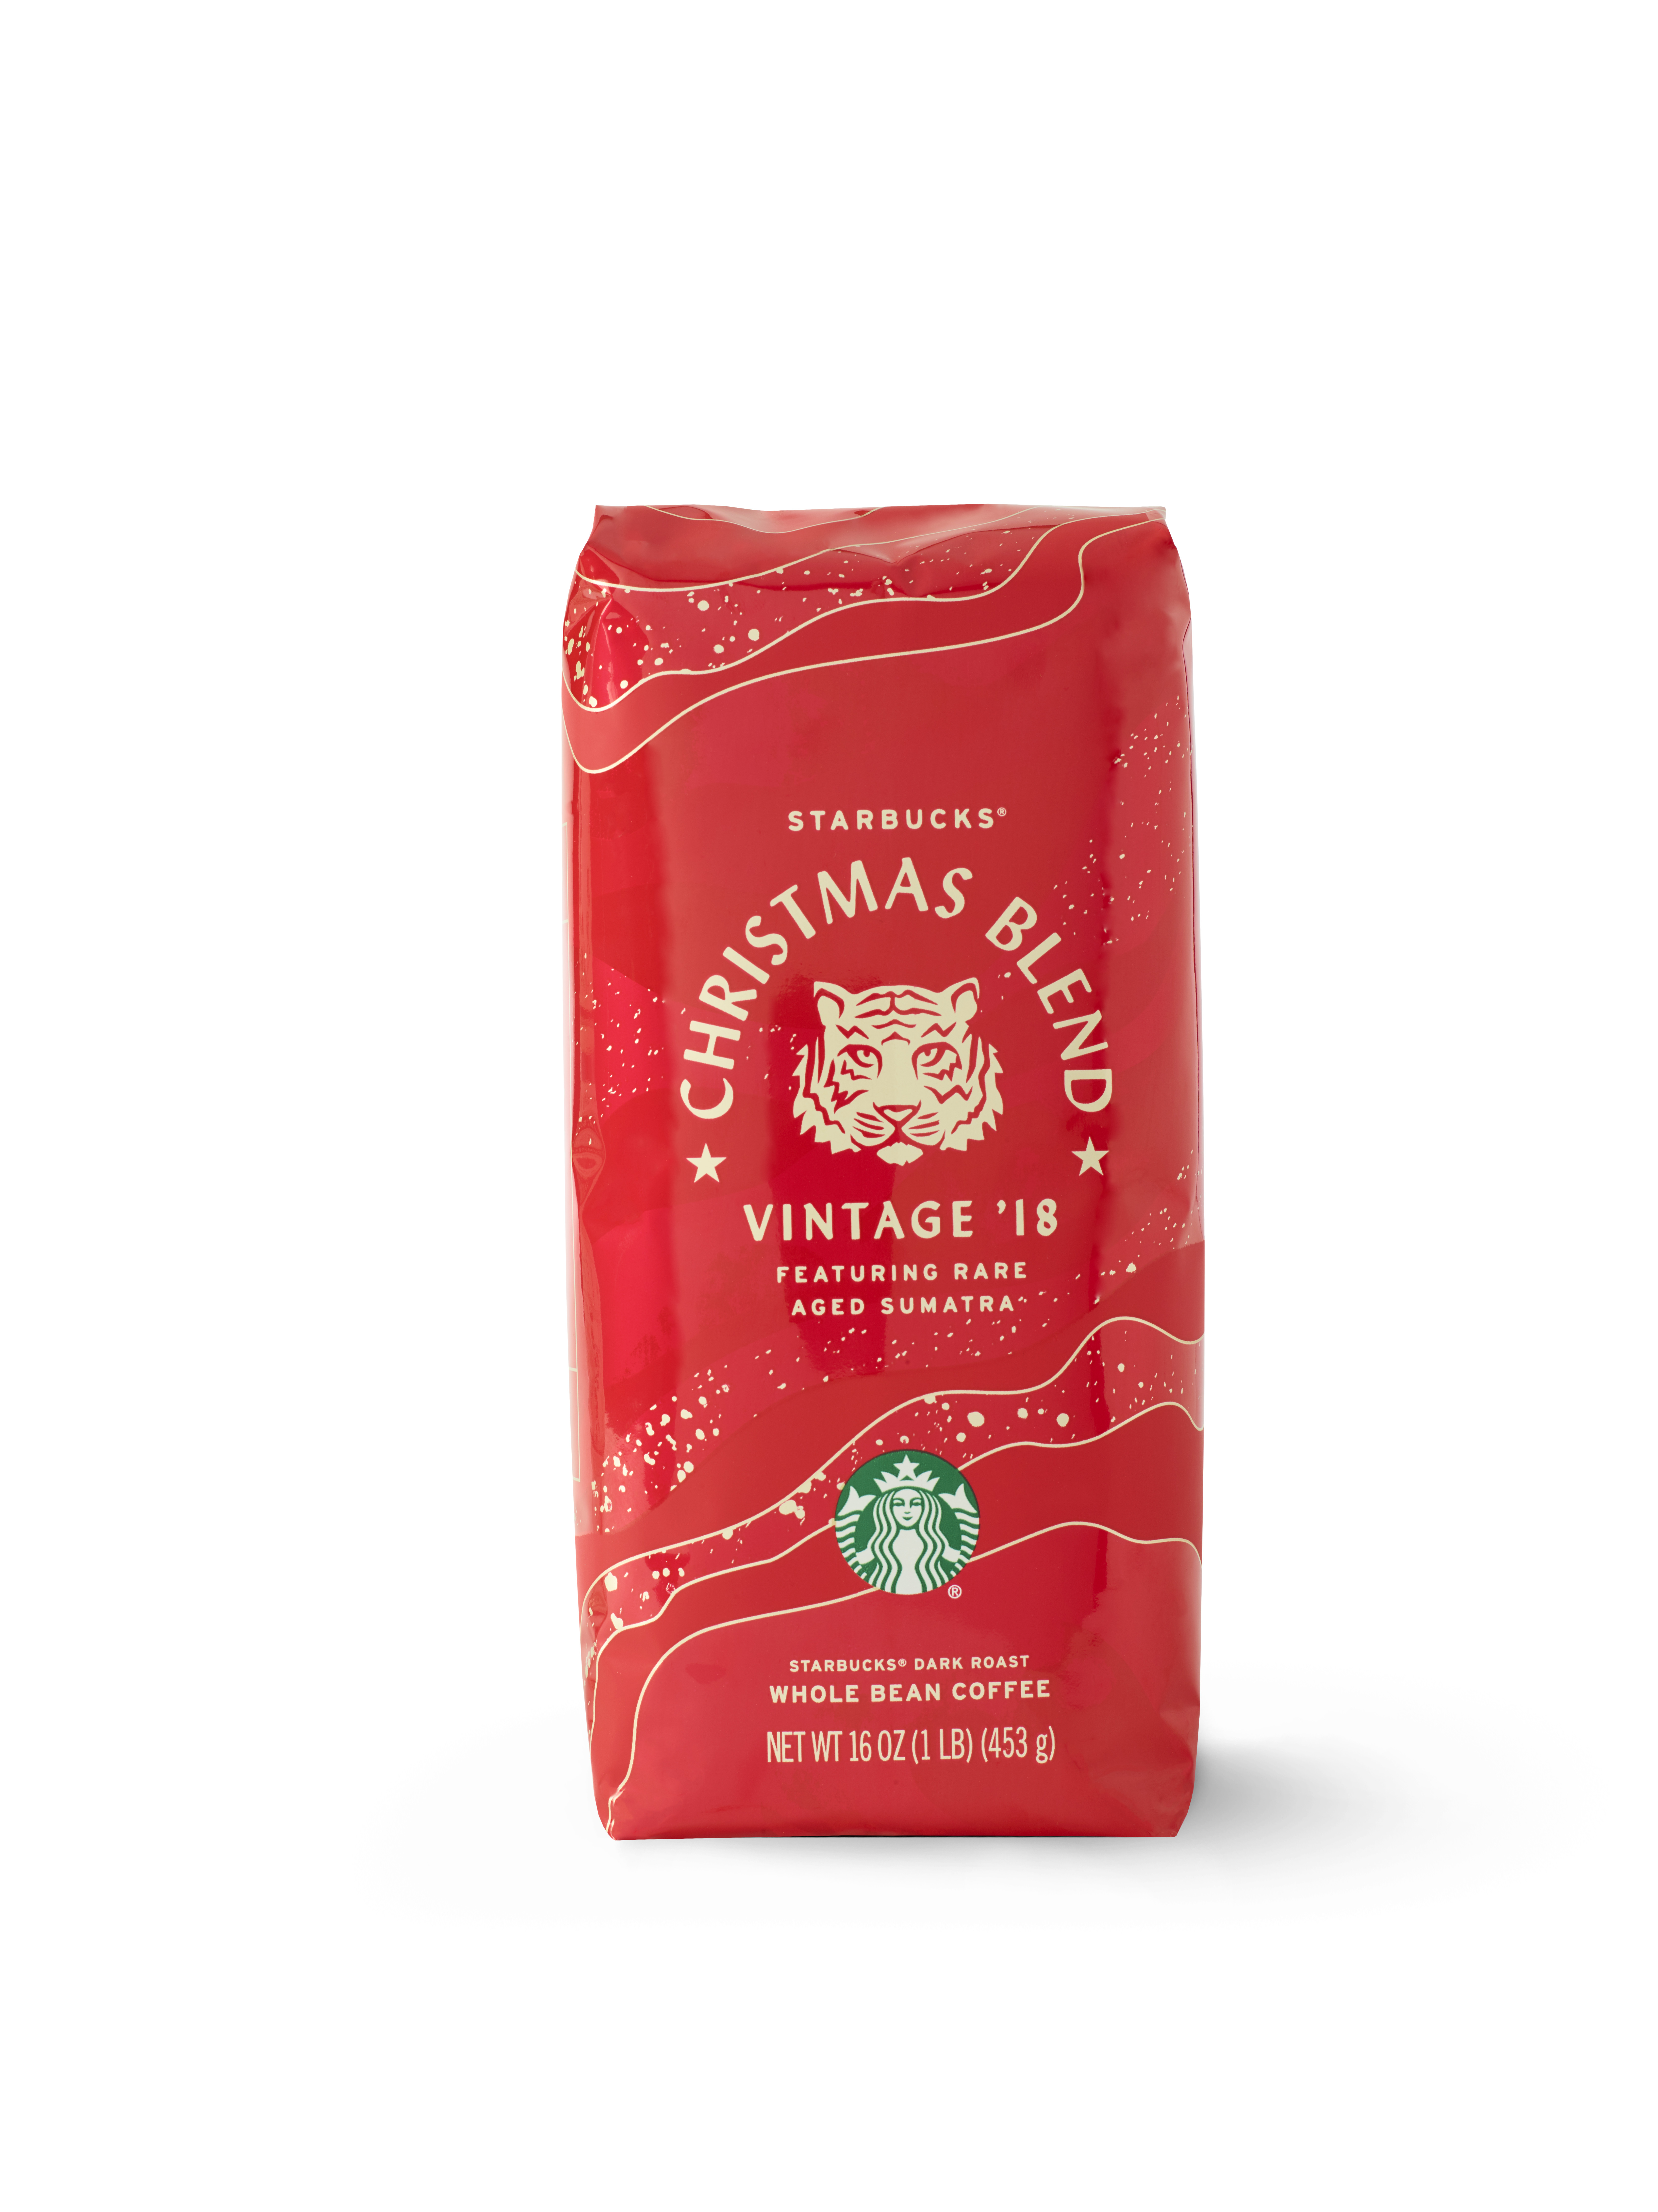 Starbucks Christmas Blend Vintage 2020 Brew up a little holiday spirit with Starbucks coffees